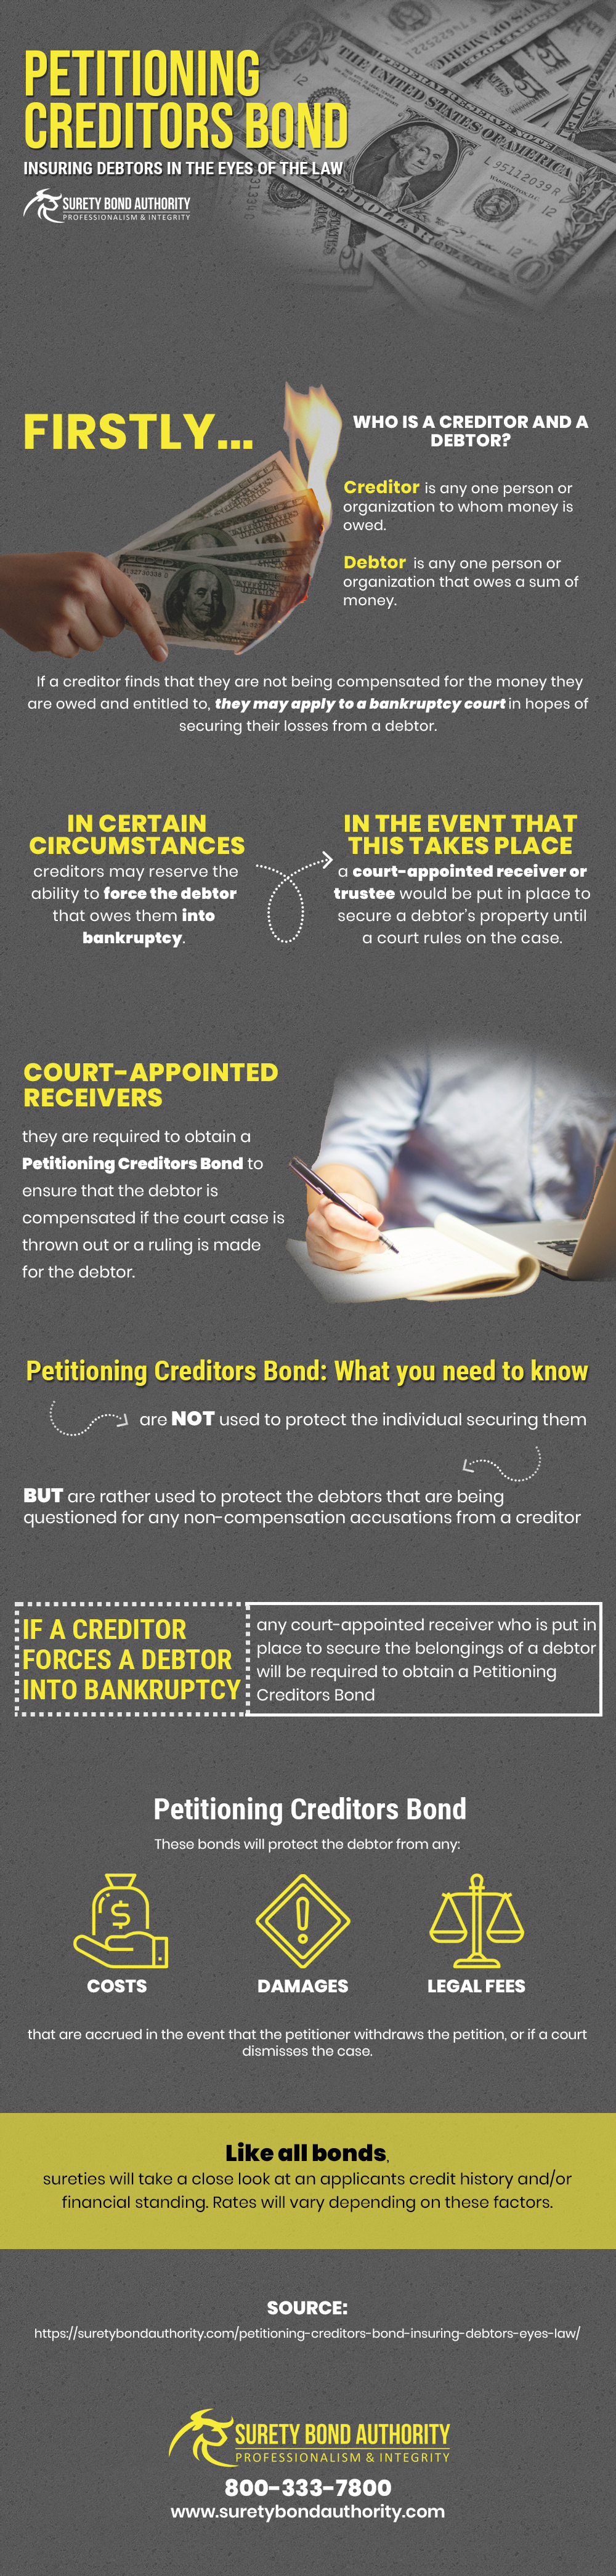 Petitioning Creditors Bond Infographic